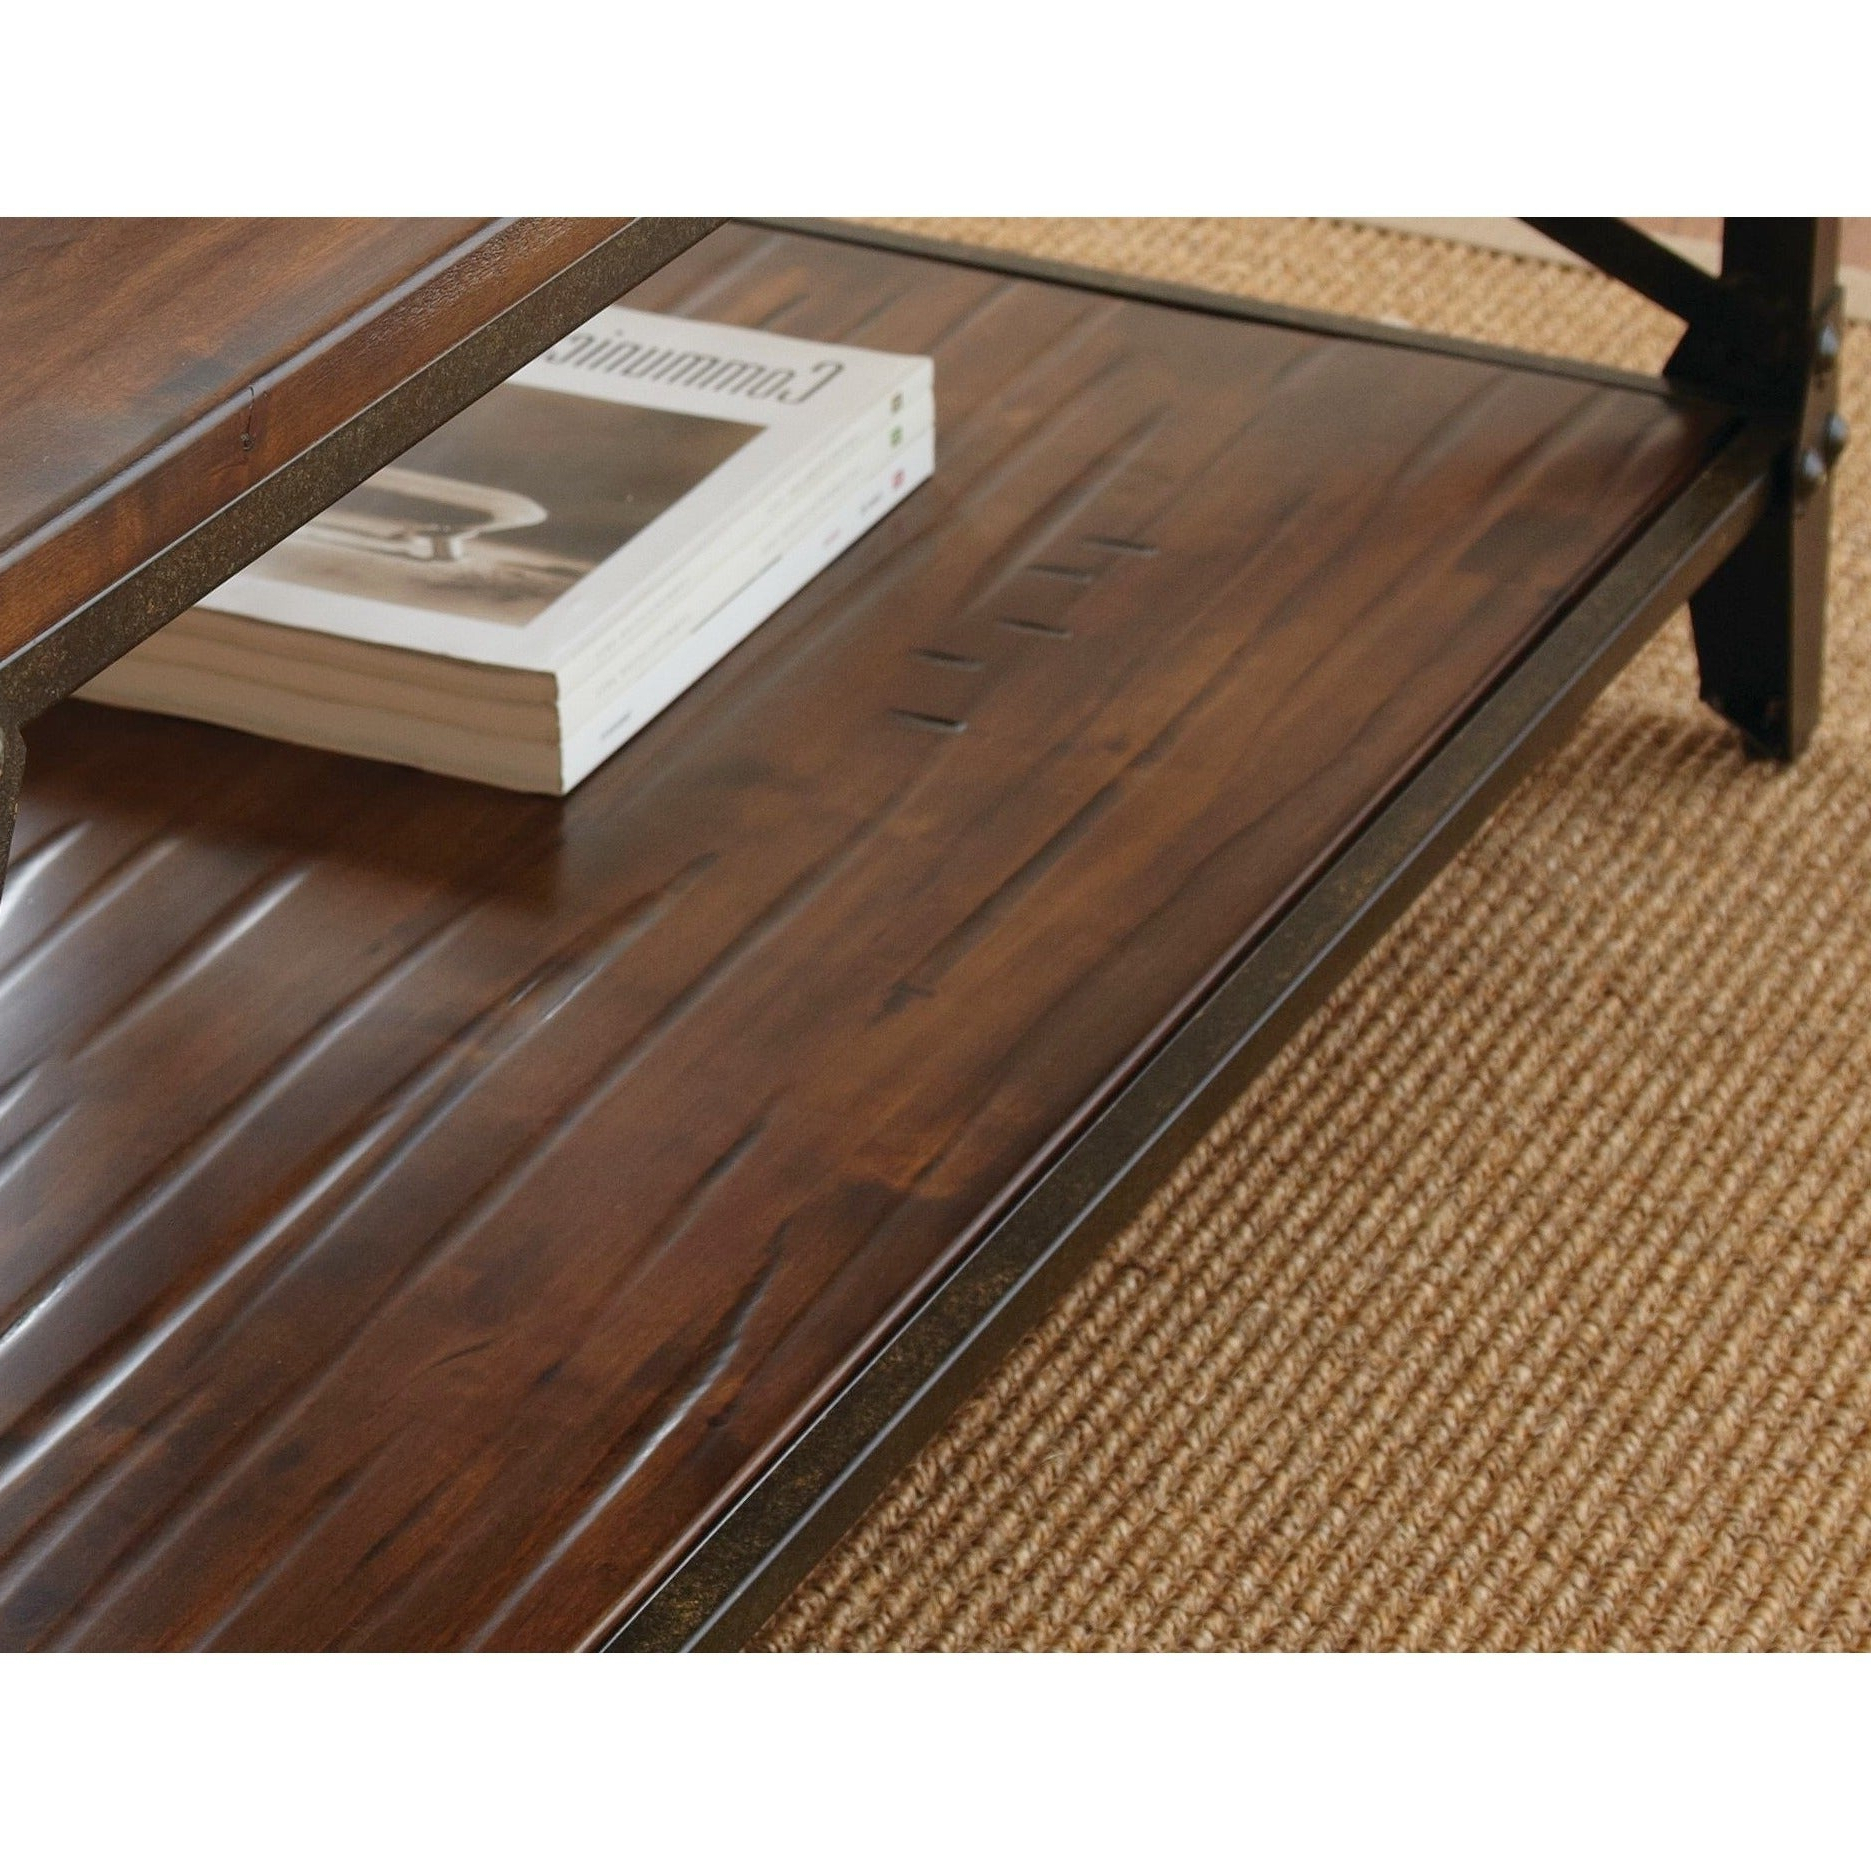 Favorite Carbon Loft Fischer Brown Solid Birch And Iron Rustic Coffee Tables Within Carbon Loft Fischer Brown Solid Birch And Iron Rustic Coffee Table (View 9 of 20)